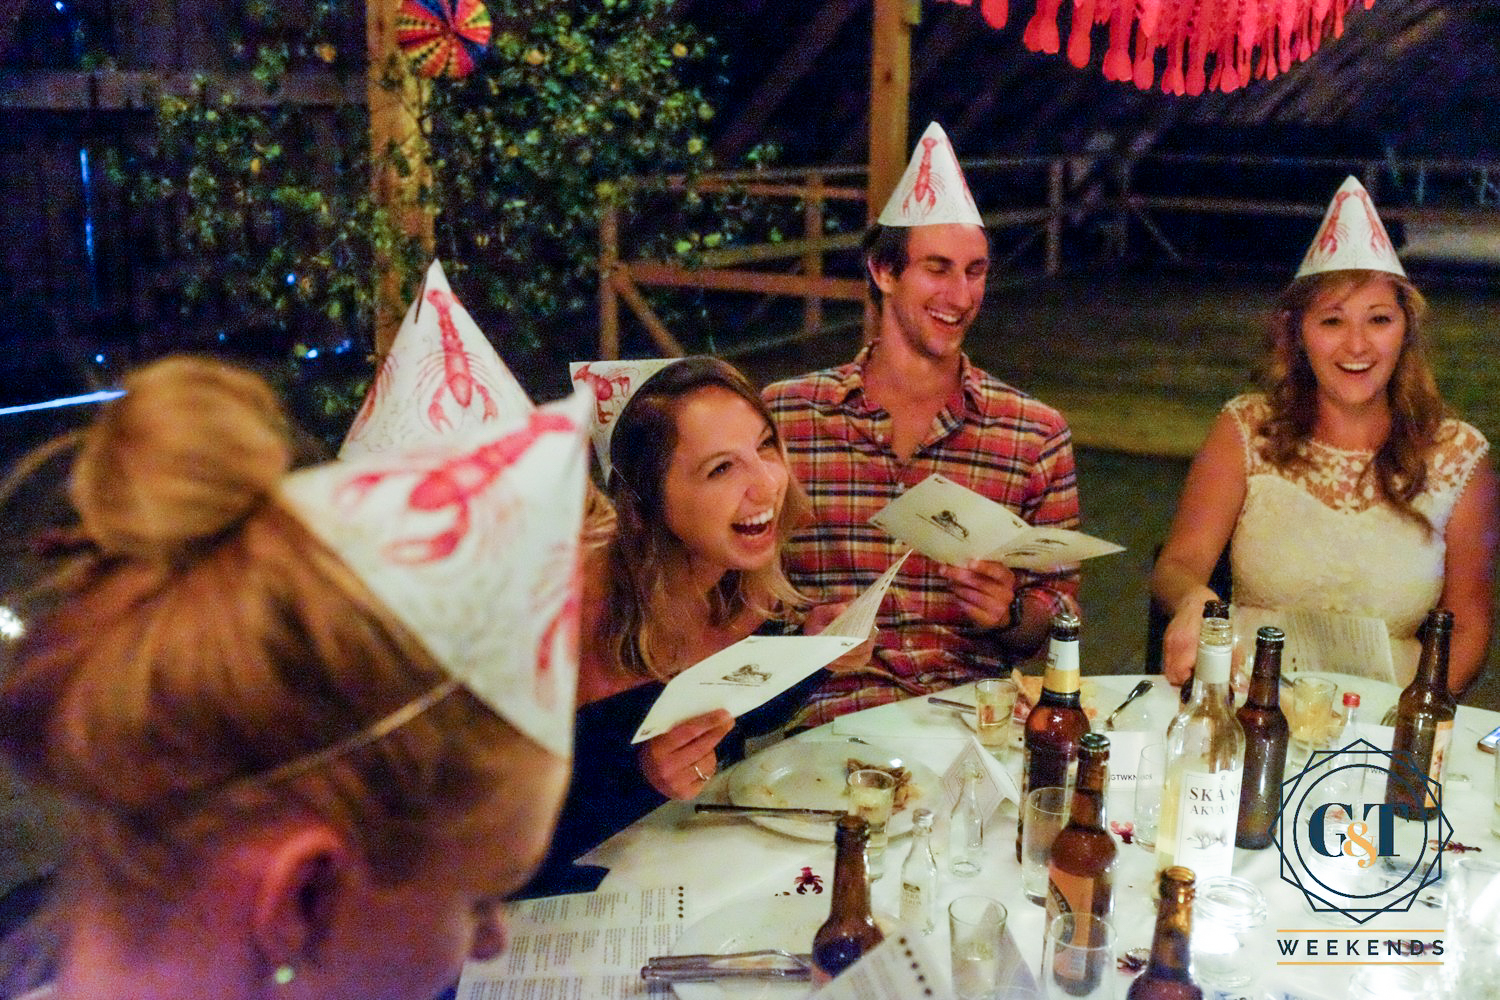 gt-weekends-image-crayfish-party